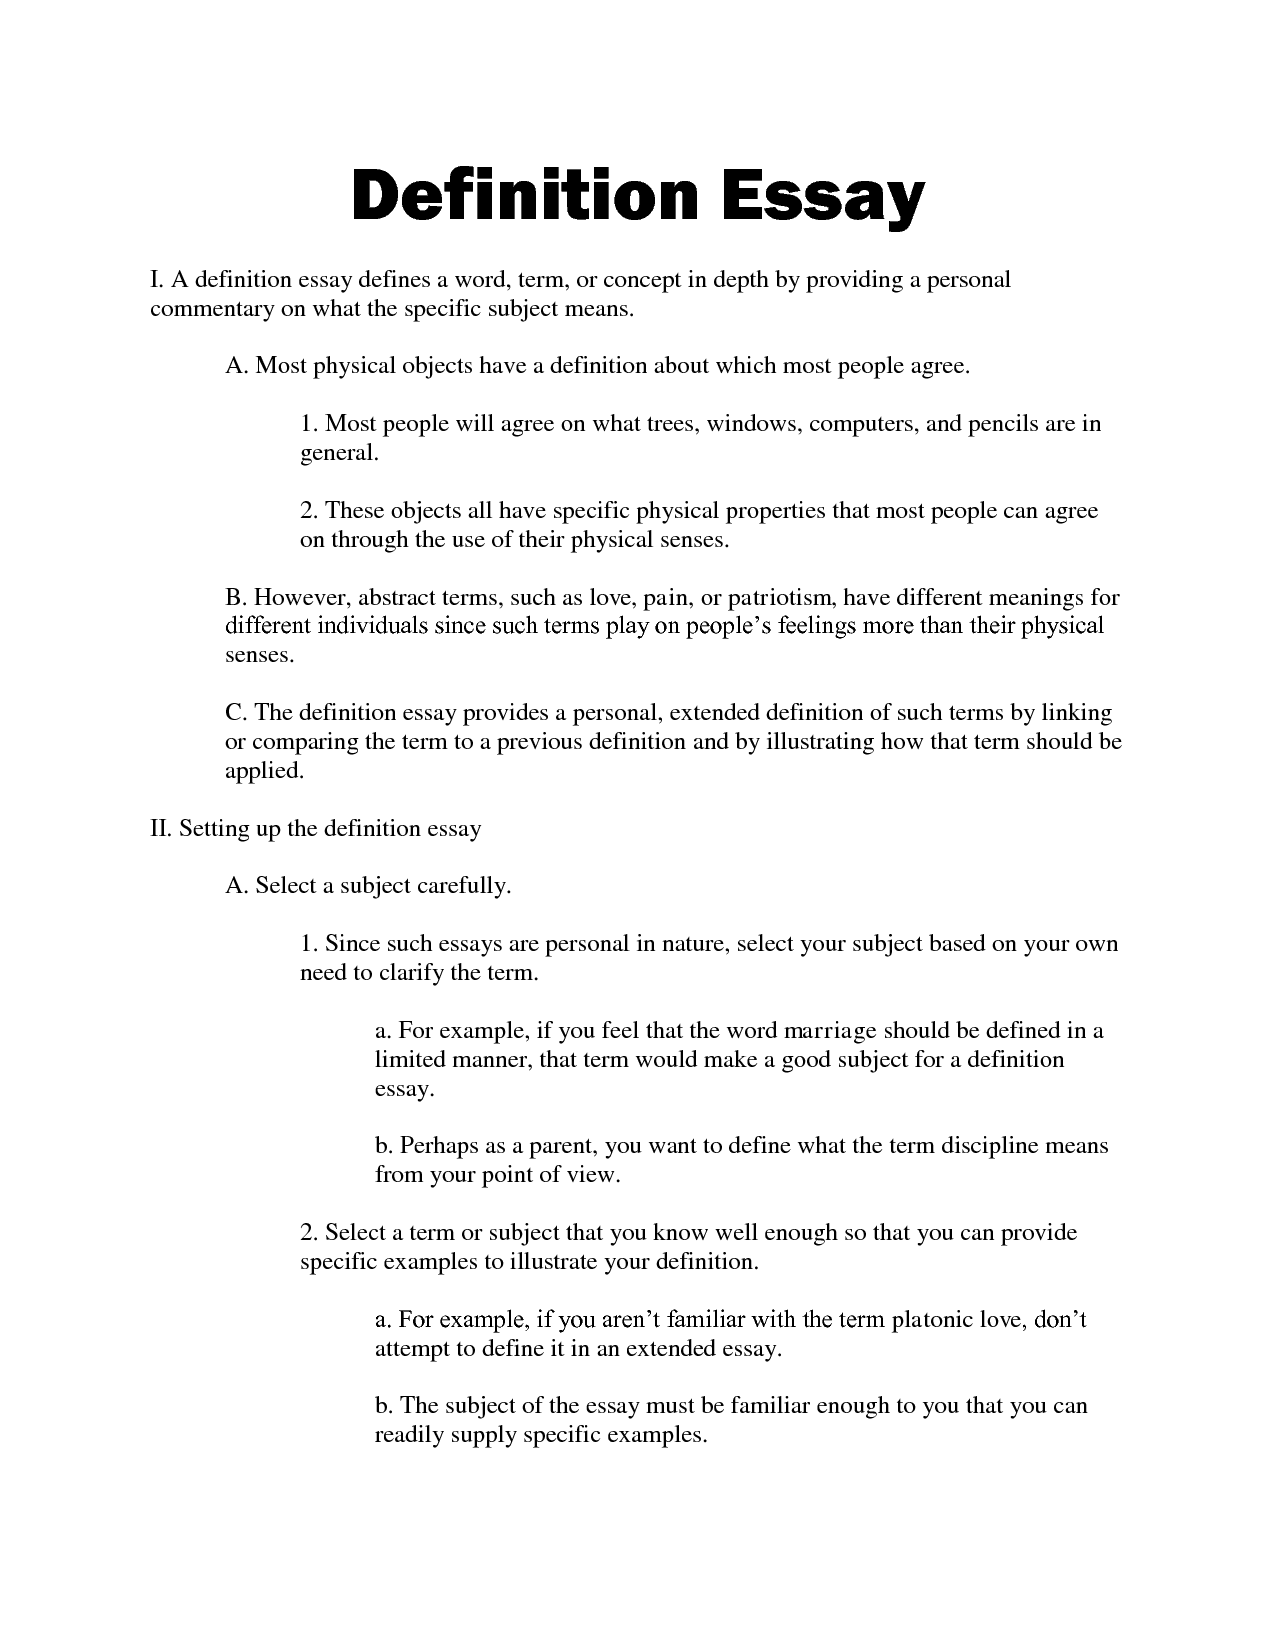 how to define a word in an essay example